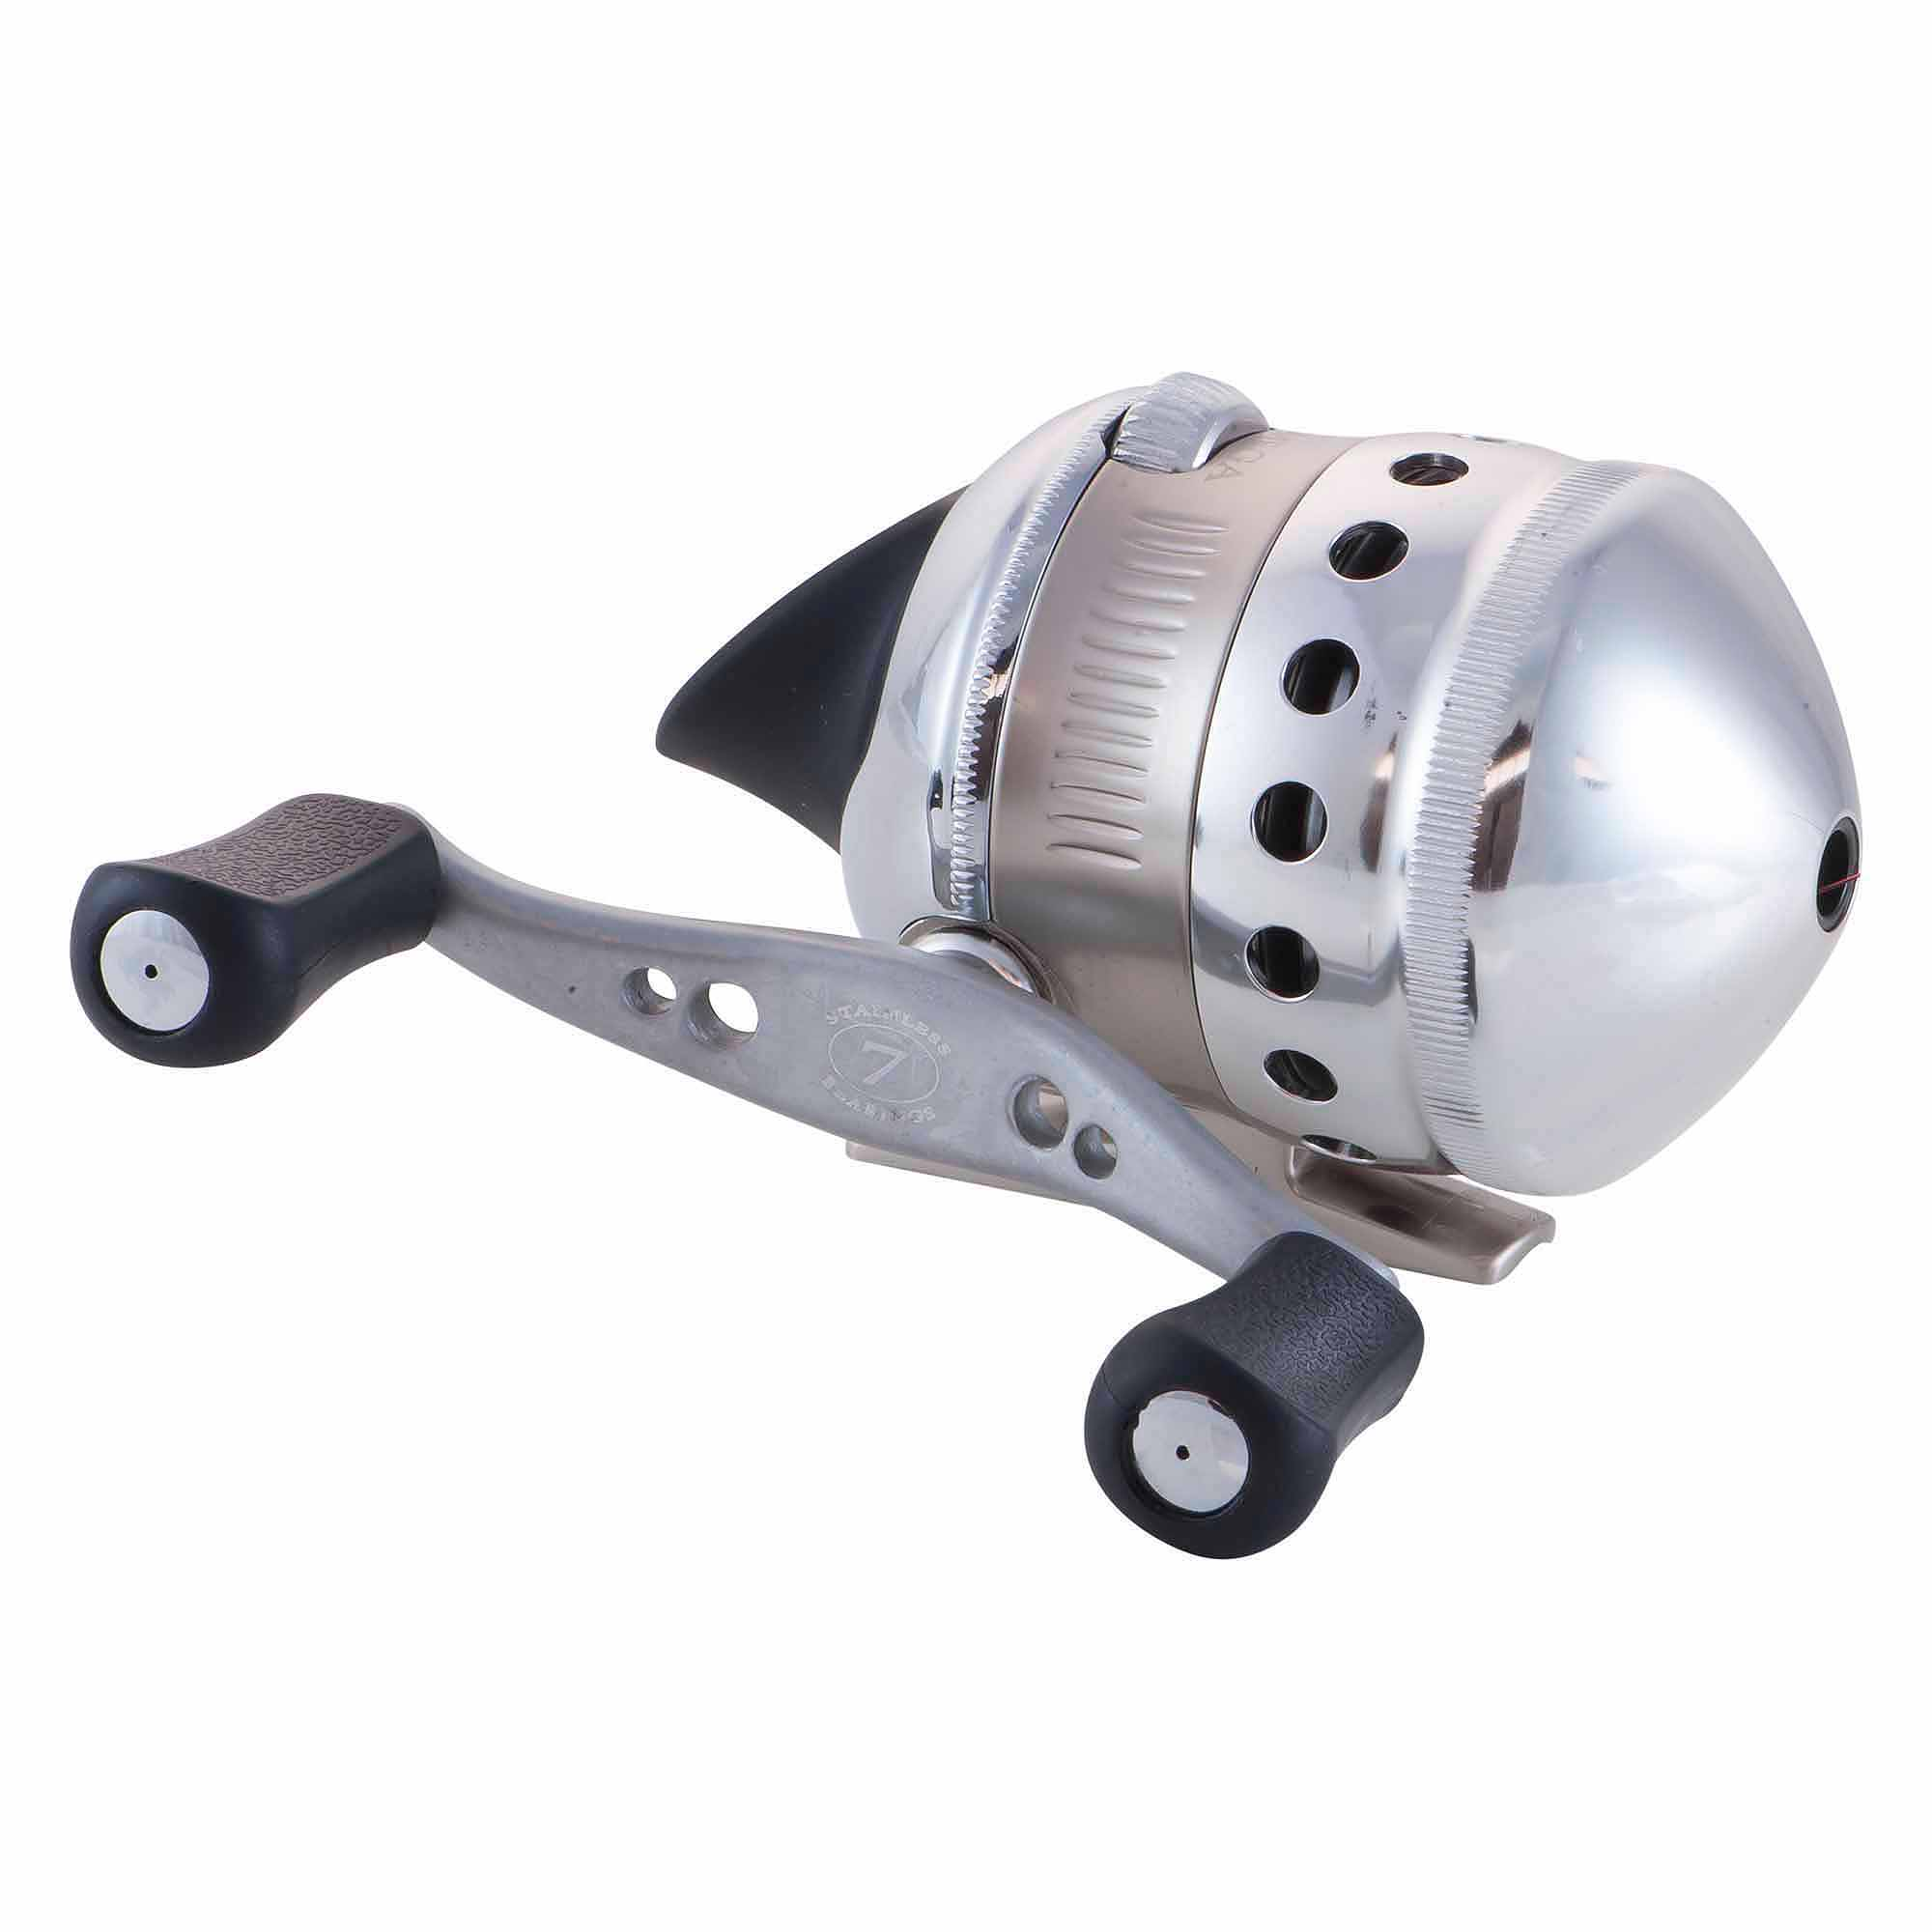 Zebco Omega Spincast Reel 6bb+1 spare spool 3sz, Clam by Zebco Sales Company, LLC.